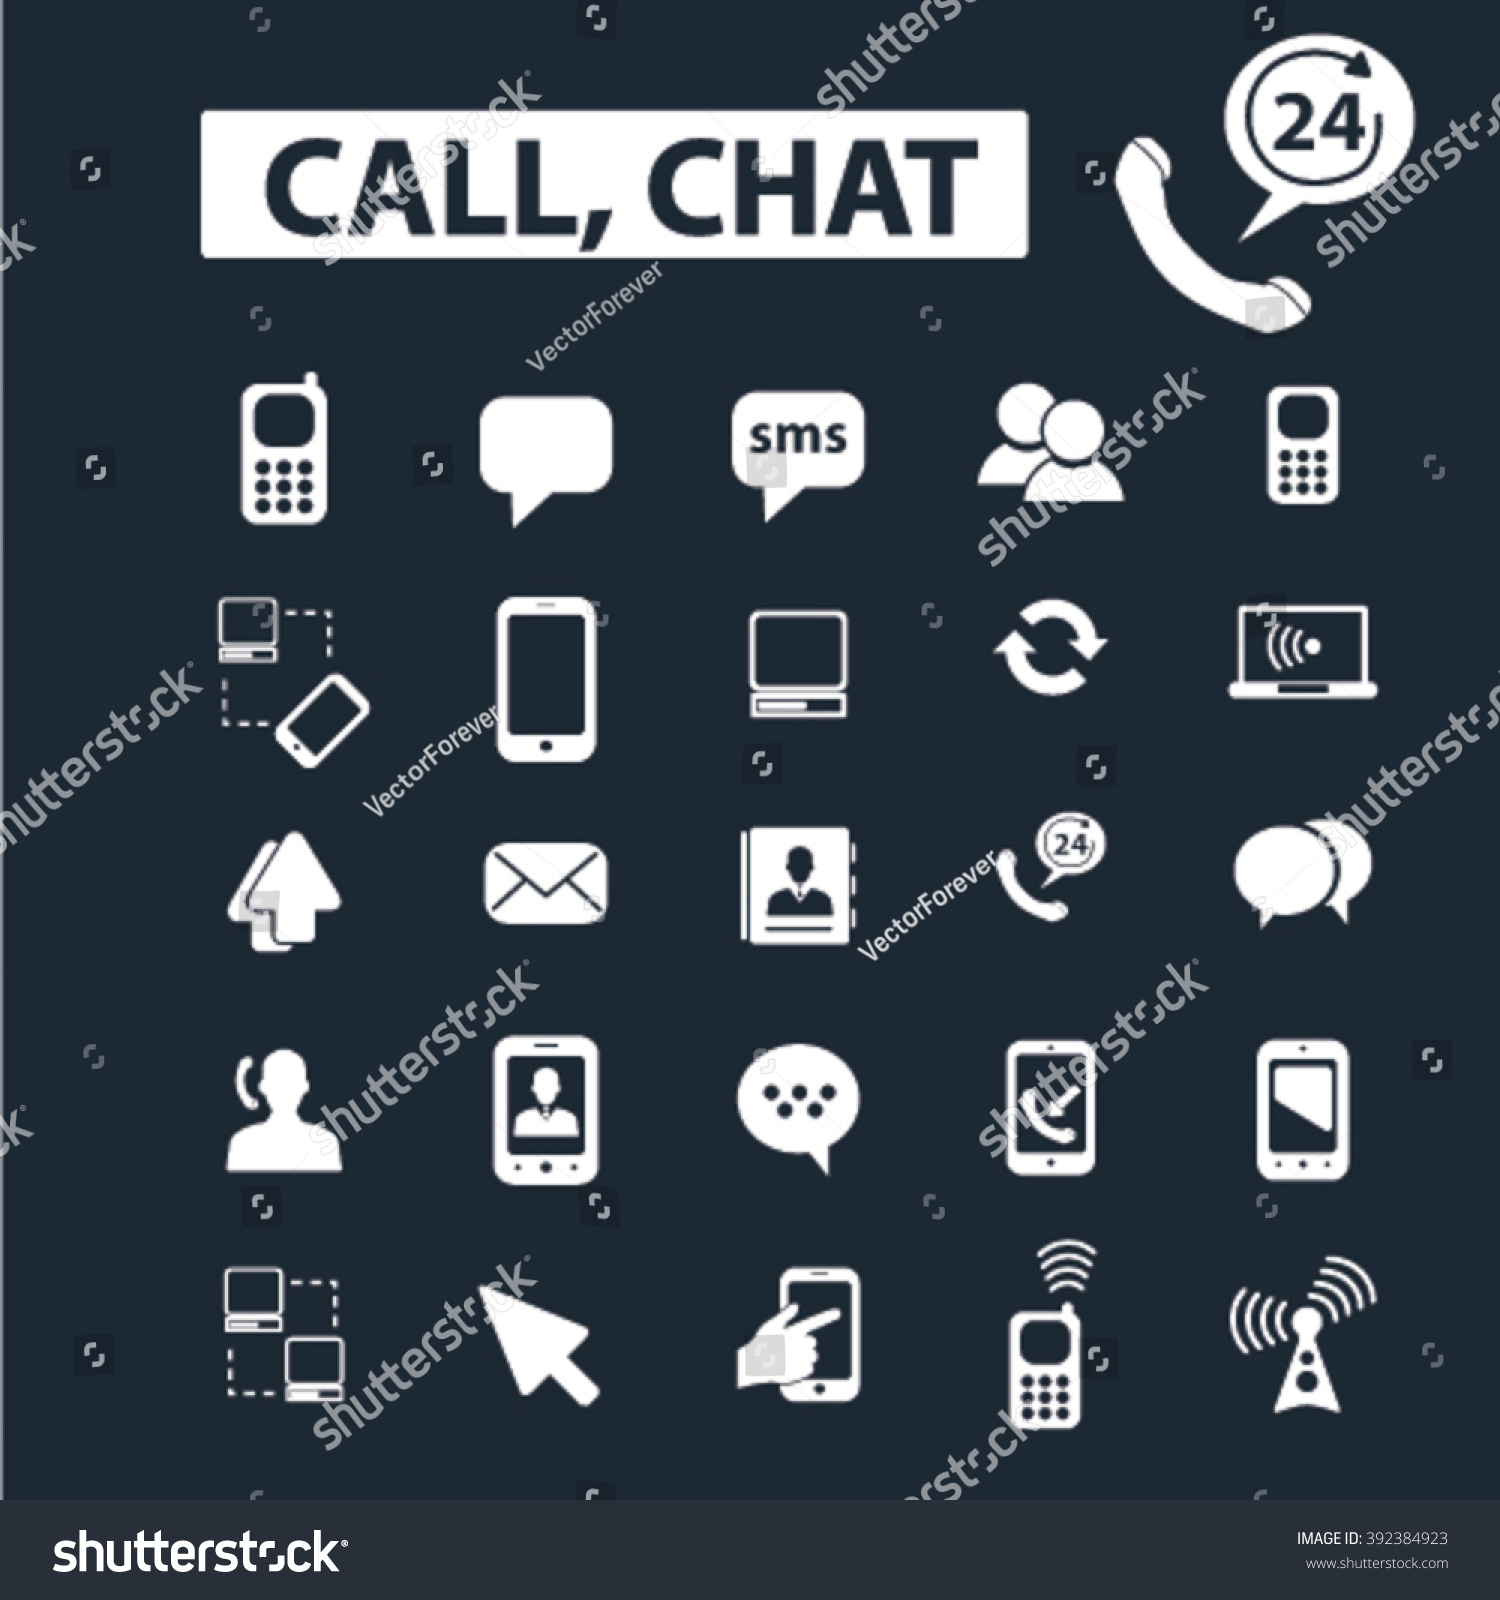 call chat Top best video calling software for pc 2018 download voice video chat program app tool video chat for pc computer free skype alternatives slow connection windows 7 8 10 mac list.